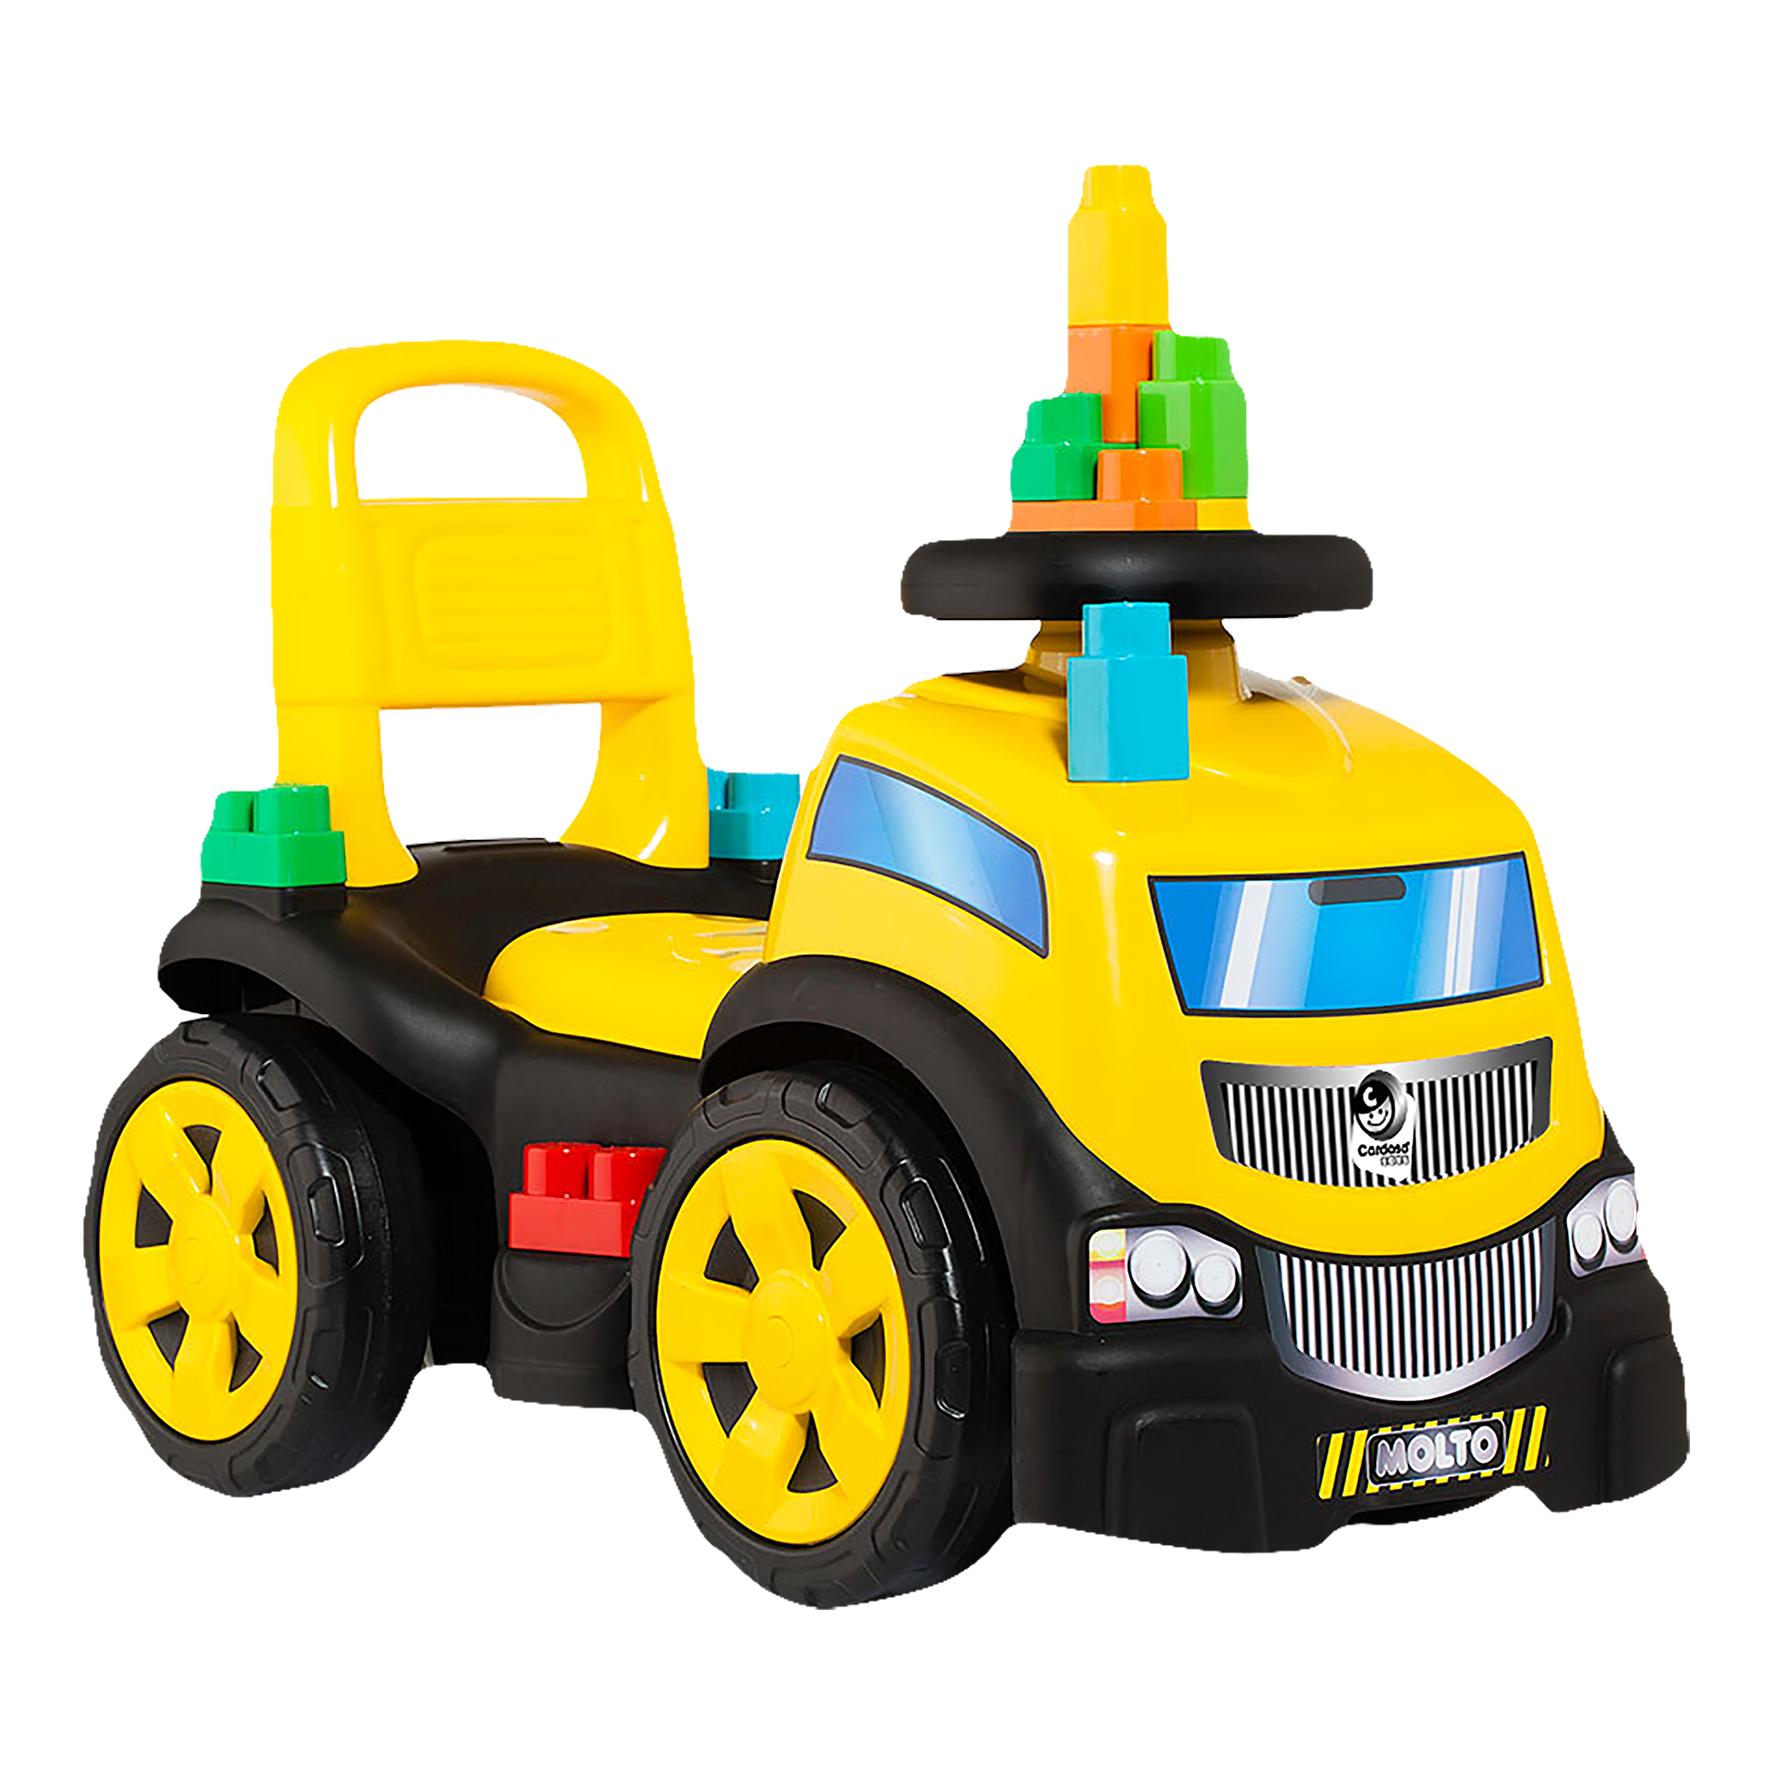 REF.-8014—Baby-Land-Blocks-Truck-Ride-On-menino